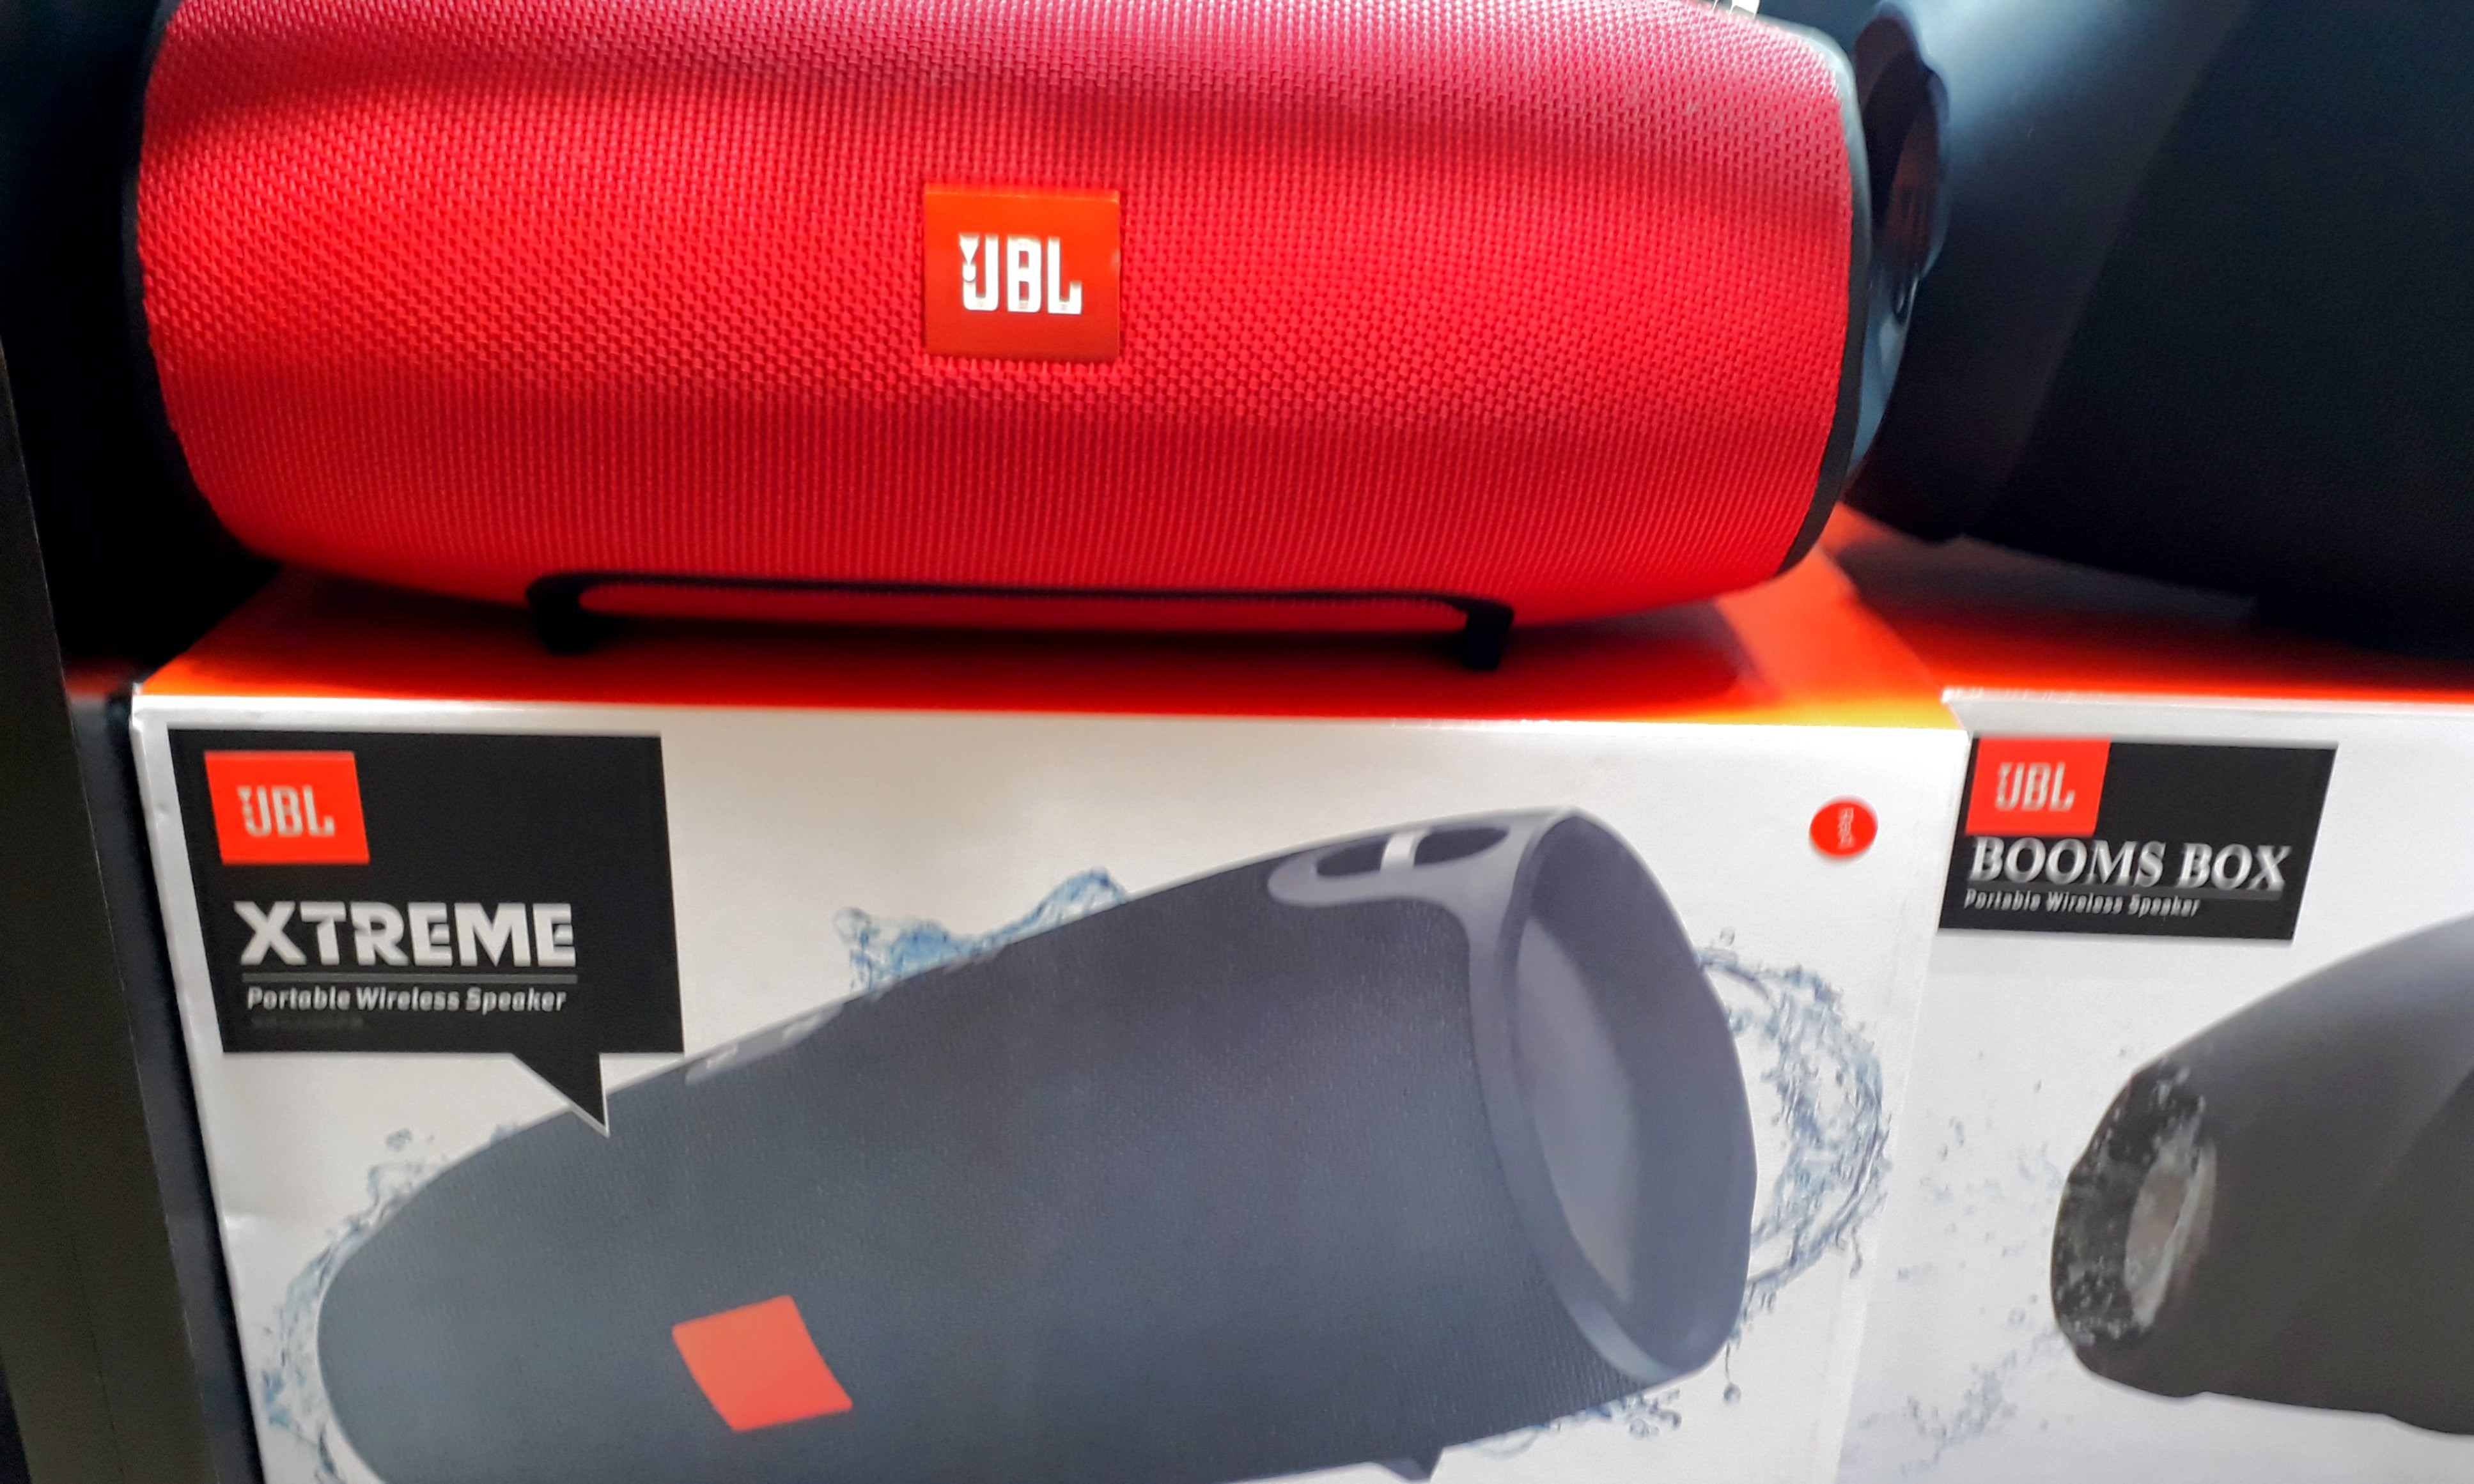 Jbl Xtreme Portable Wireless Speaker Electronics Others On Carousell Red Photo